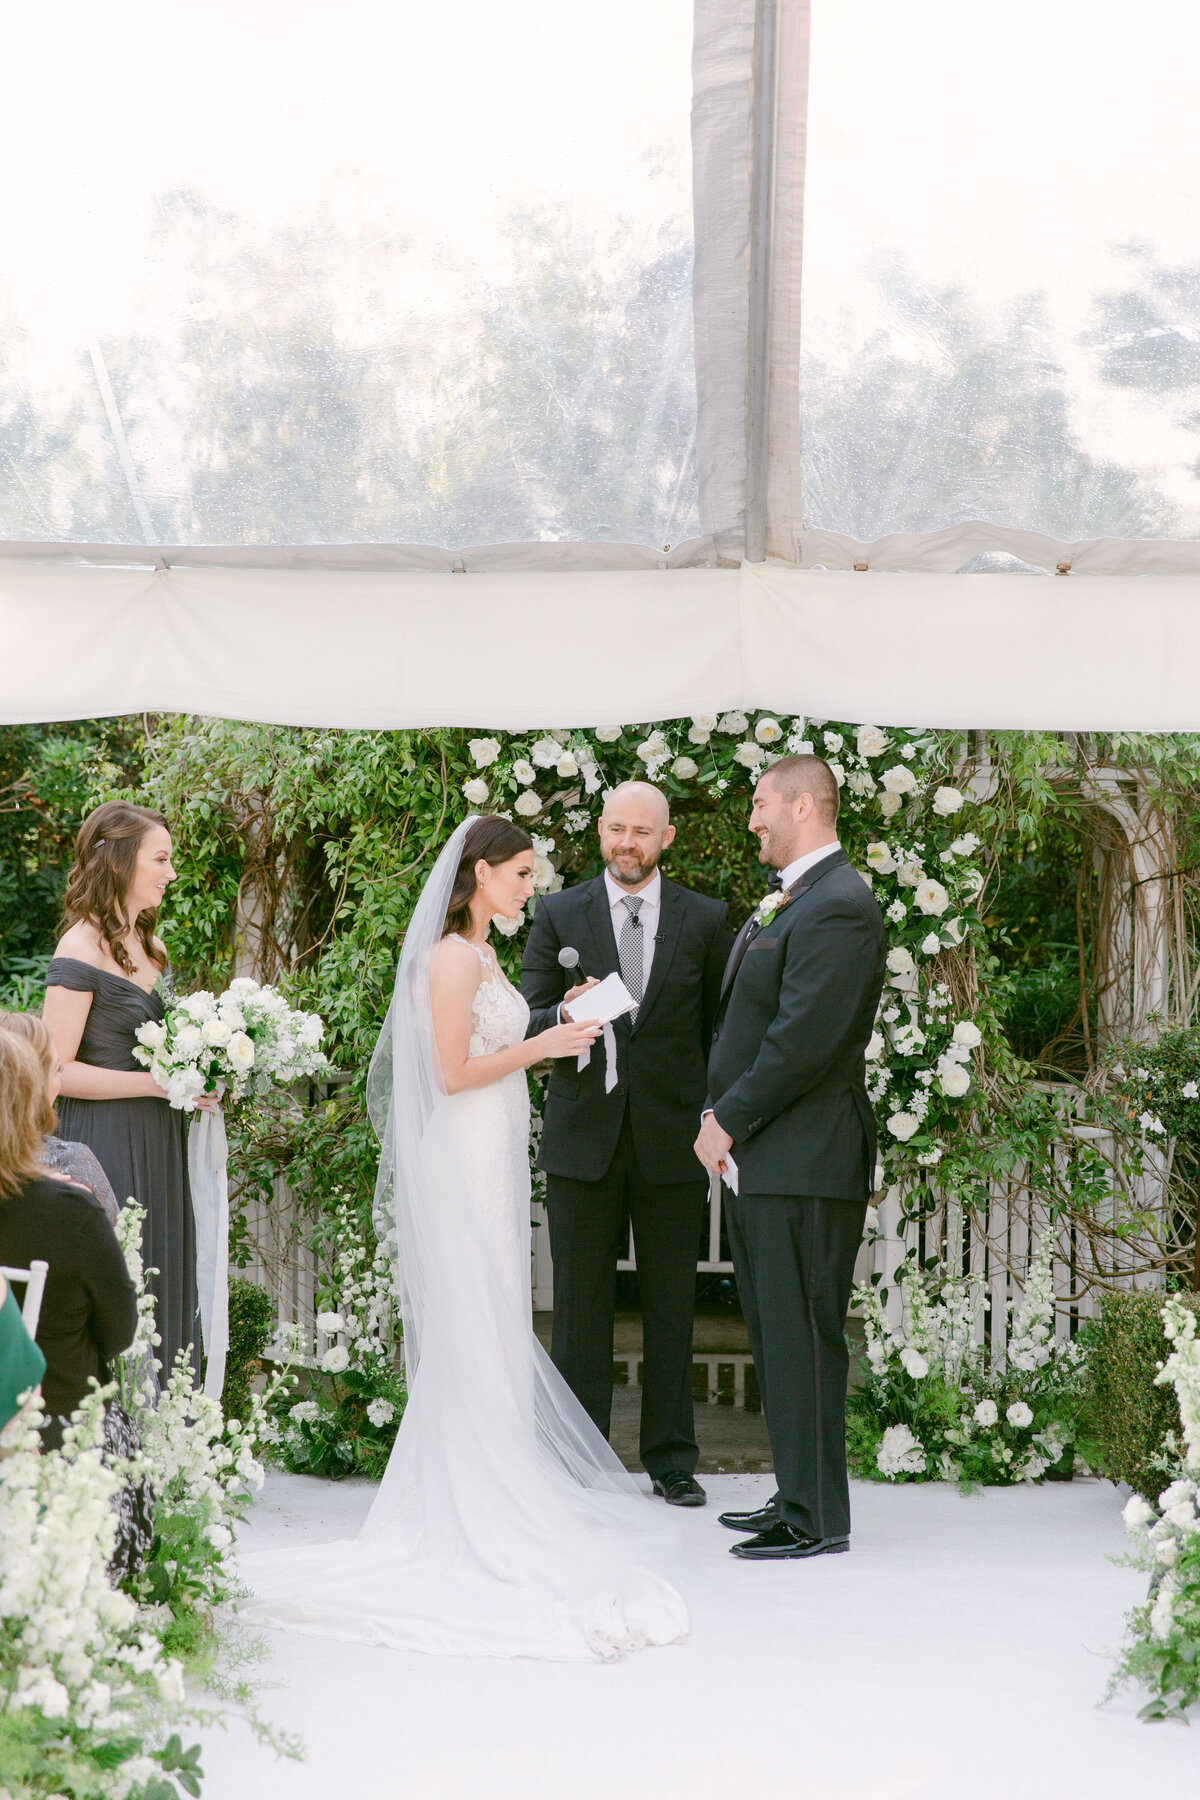 Tretter_Wedding_Carmel_Mountain_Ranch_San_Diego_California_Jacksonville_Florida_Devon_Donnahoo_Photography_1350